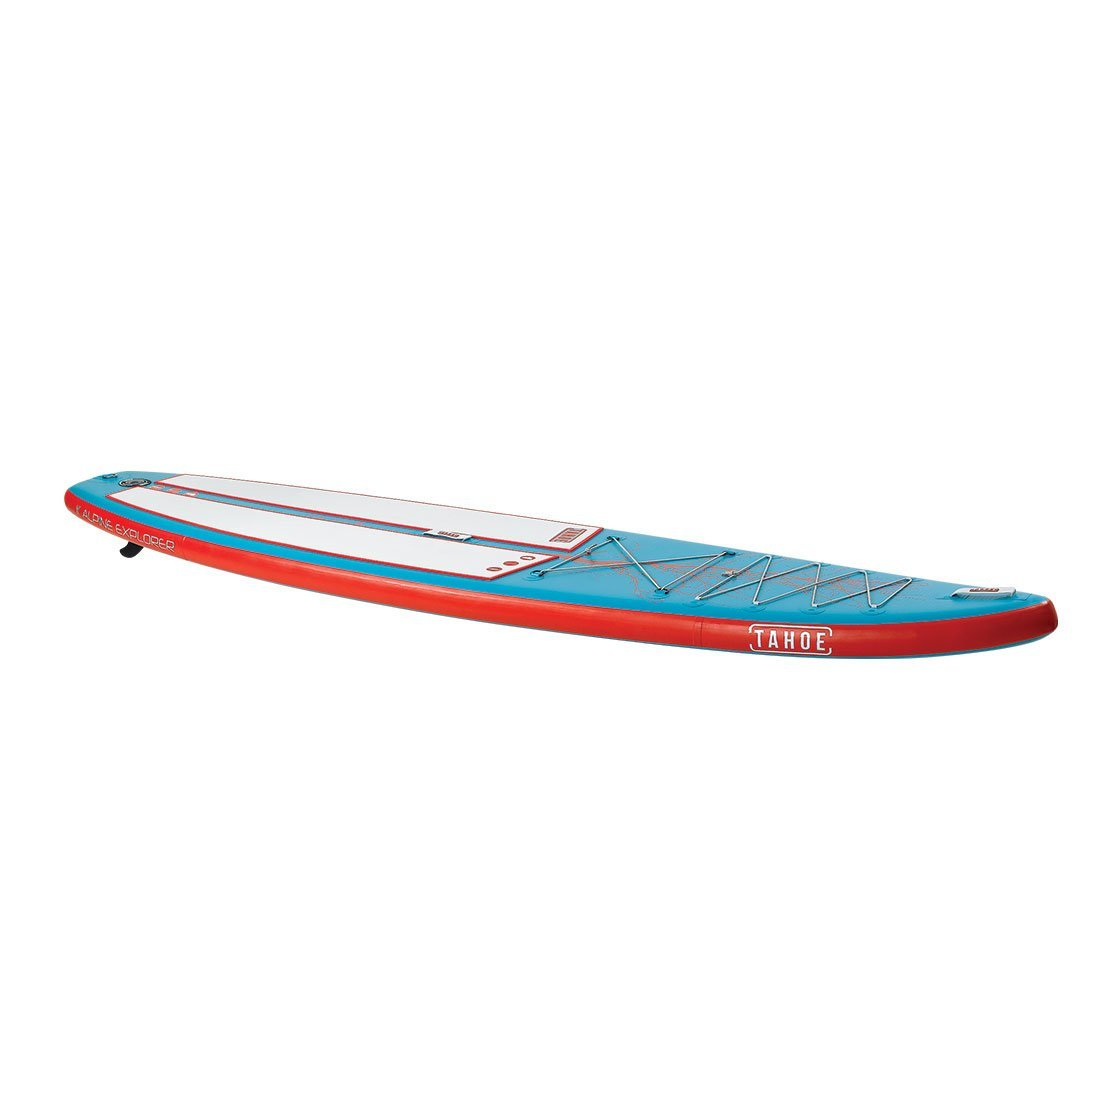 Tahoe SUP Alpine Explorer 11' Inflatable Standup Paddle Board Paddle Boards 4theoutdoors Canada SUP outdoors